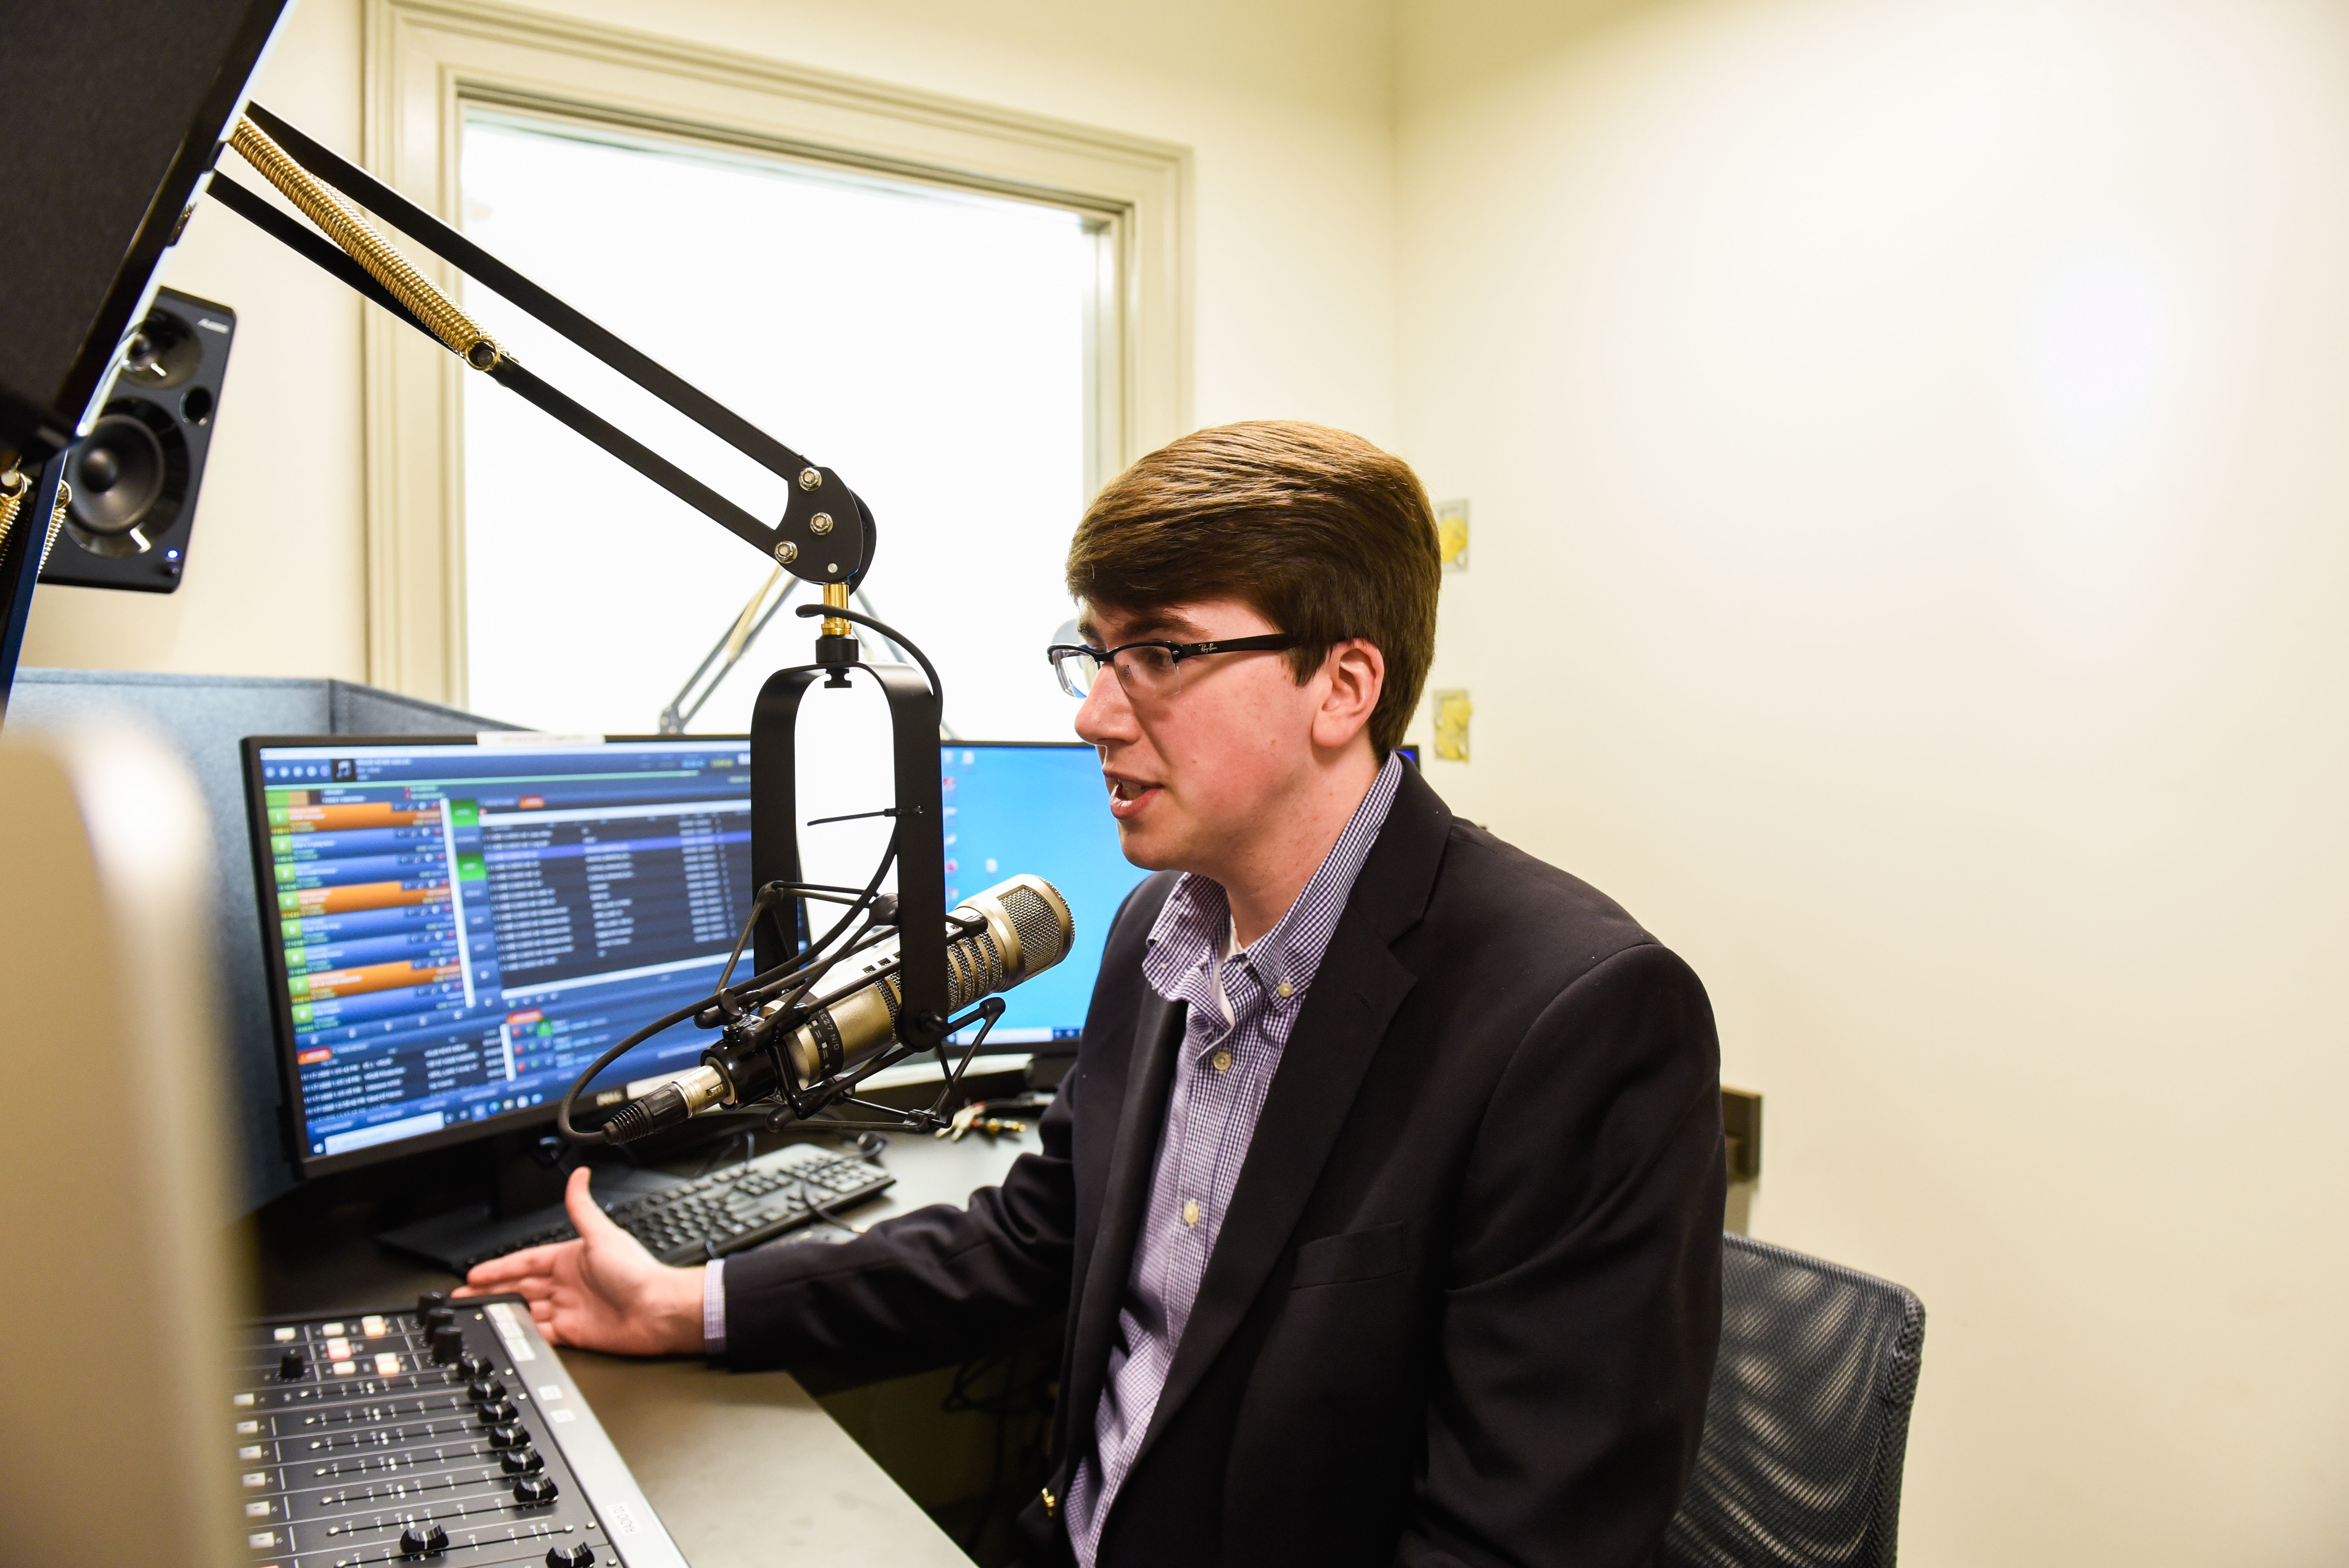 Image for Against the odds: Communication major wins national radio news award